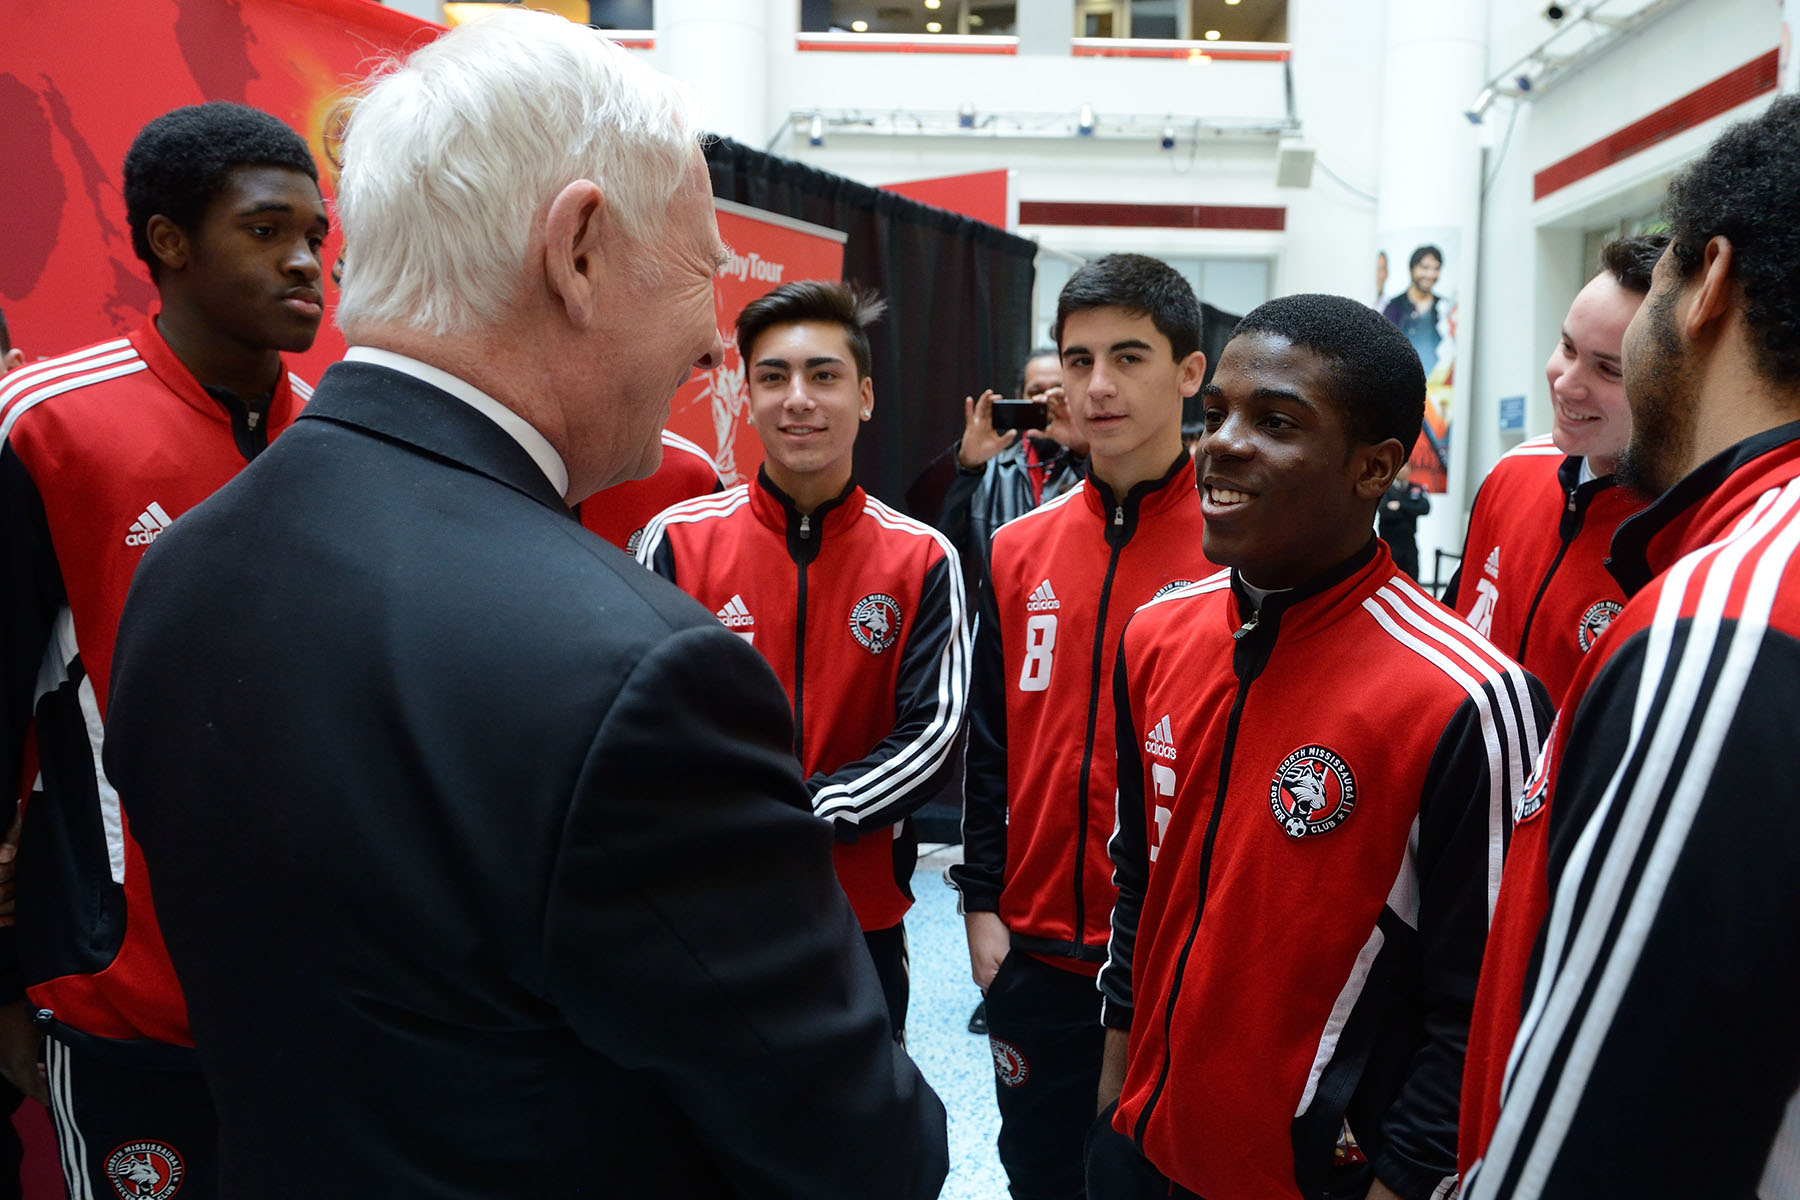 On this occasion, His Excellency also had the chance to meet the Mississauga Falcons men's U-17 soccer team.